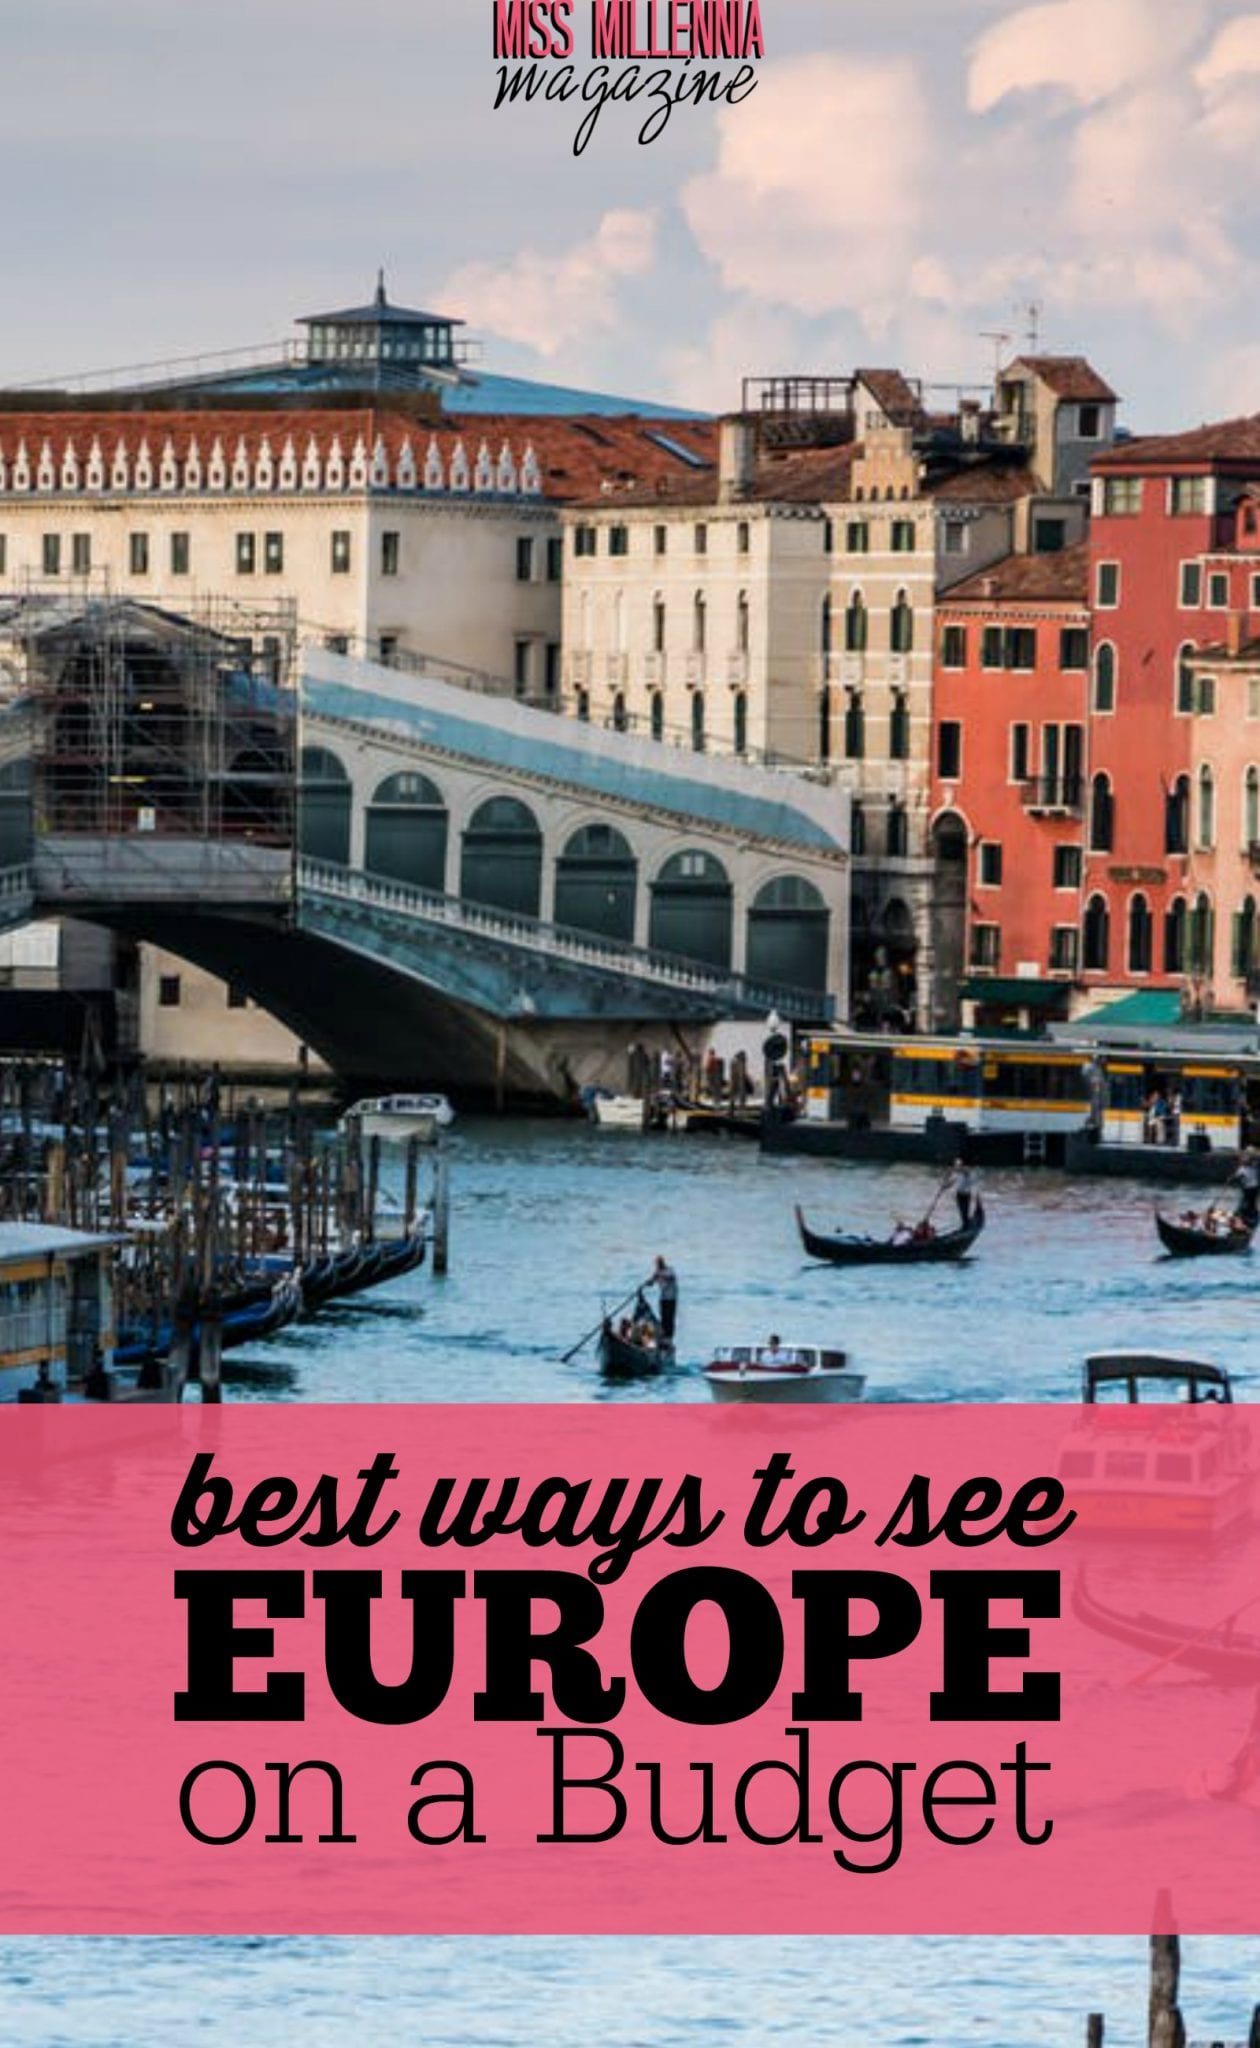 Dreaming of a European adventure? A trip to Europe may seem super expensive, but it is totally feasible to see Europe on a budget!